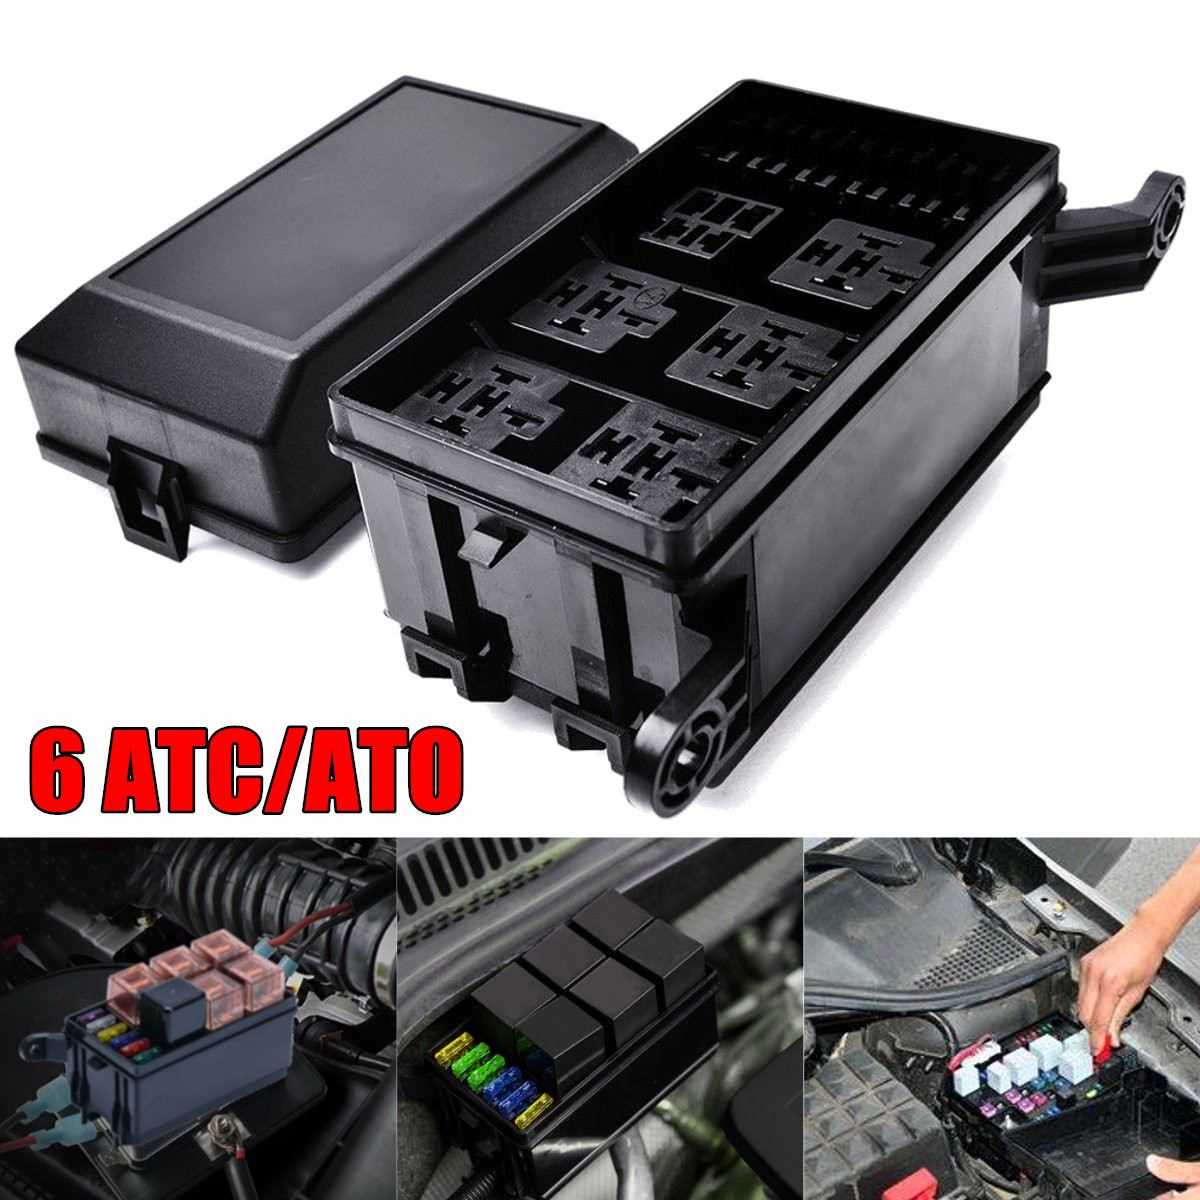 hight resolution of auto car fuse relay holder box relay socket 6 relay 6 atc ato fuses universal in car switches relays from automobiles motorcycles on aliexpress com